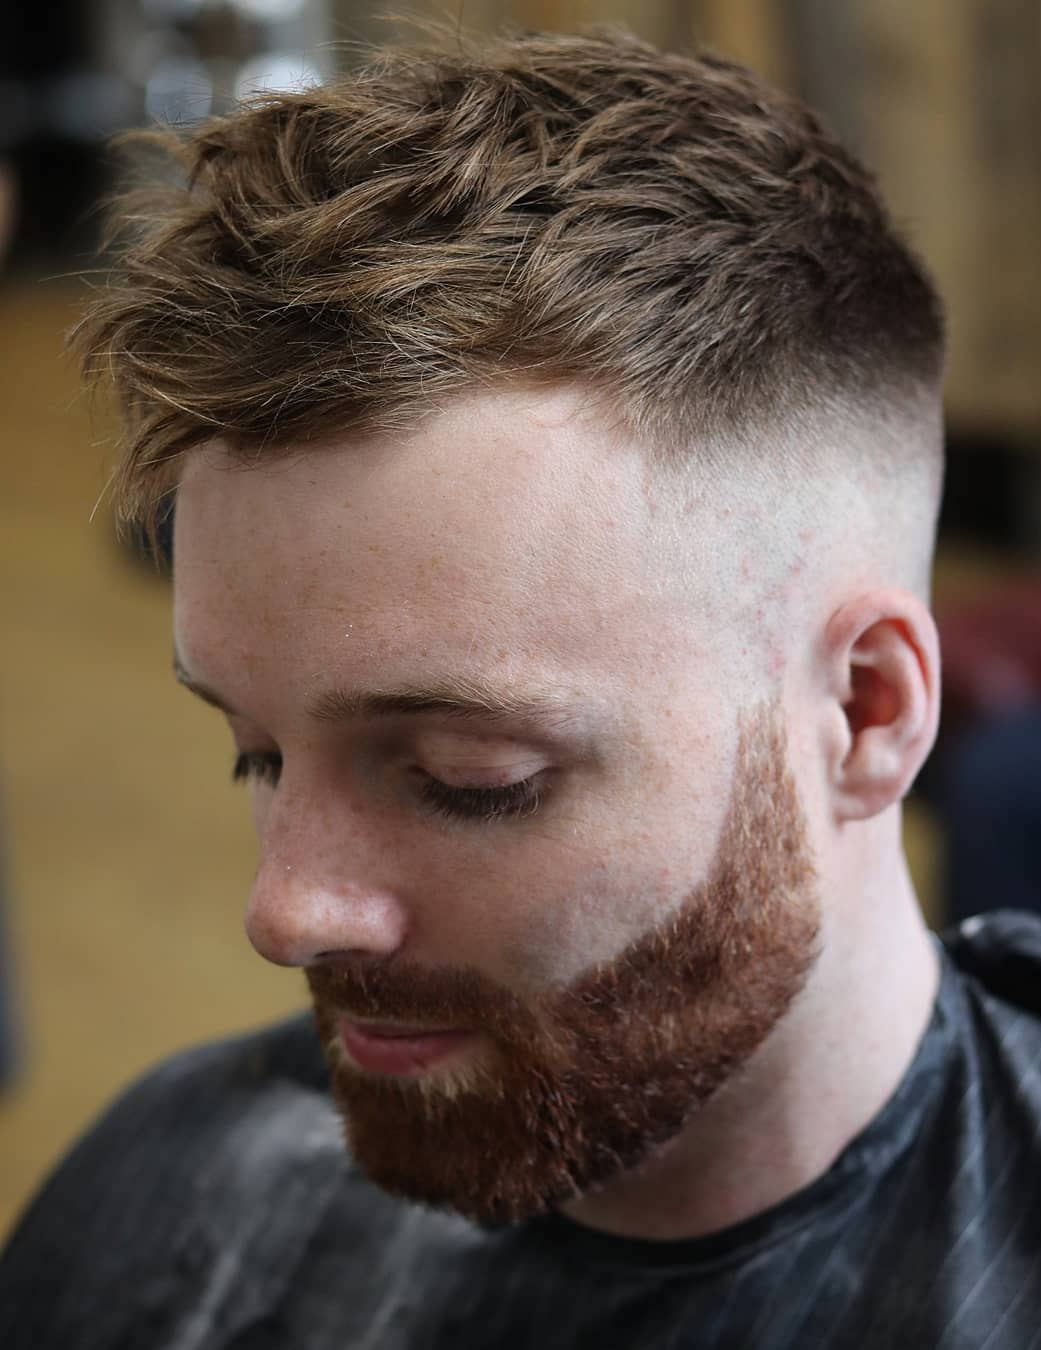 Wavy Top with Skin Fade